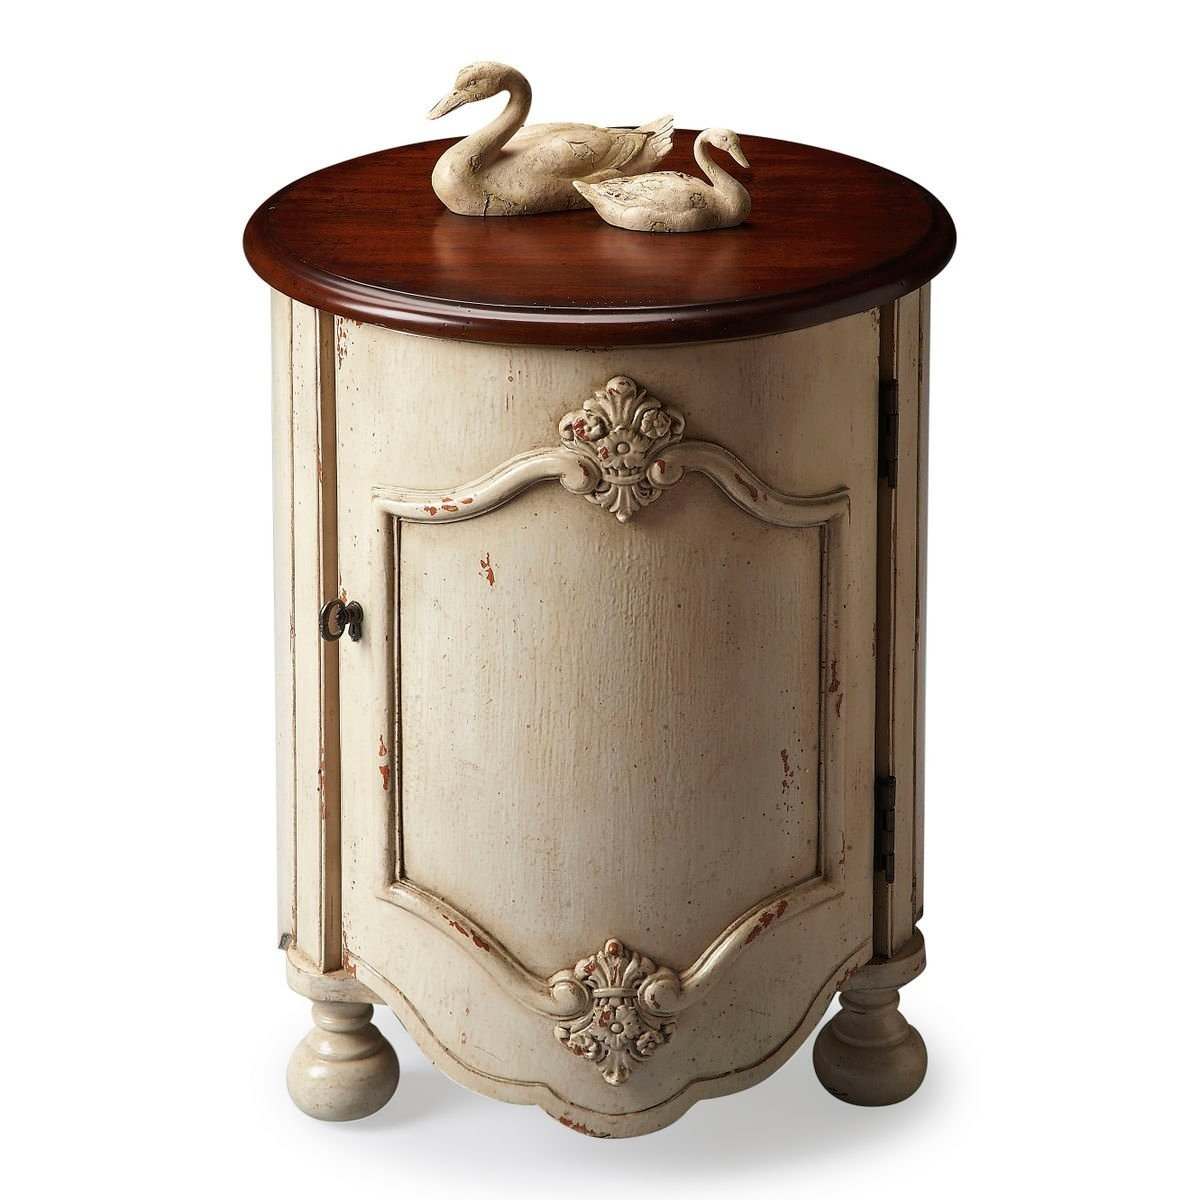 kenwood accent table vanilla with cherry wood top anja attic zinc trestle dark dining high nightstand large round wall clock outdoor patio covers storage bench foyer chest pottery